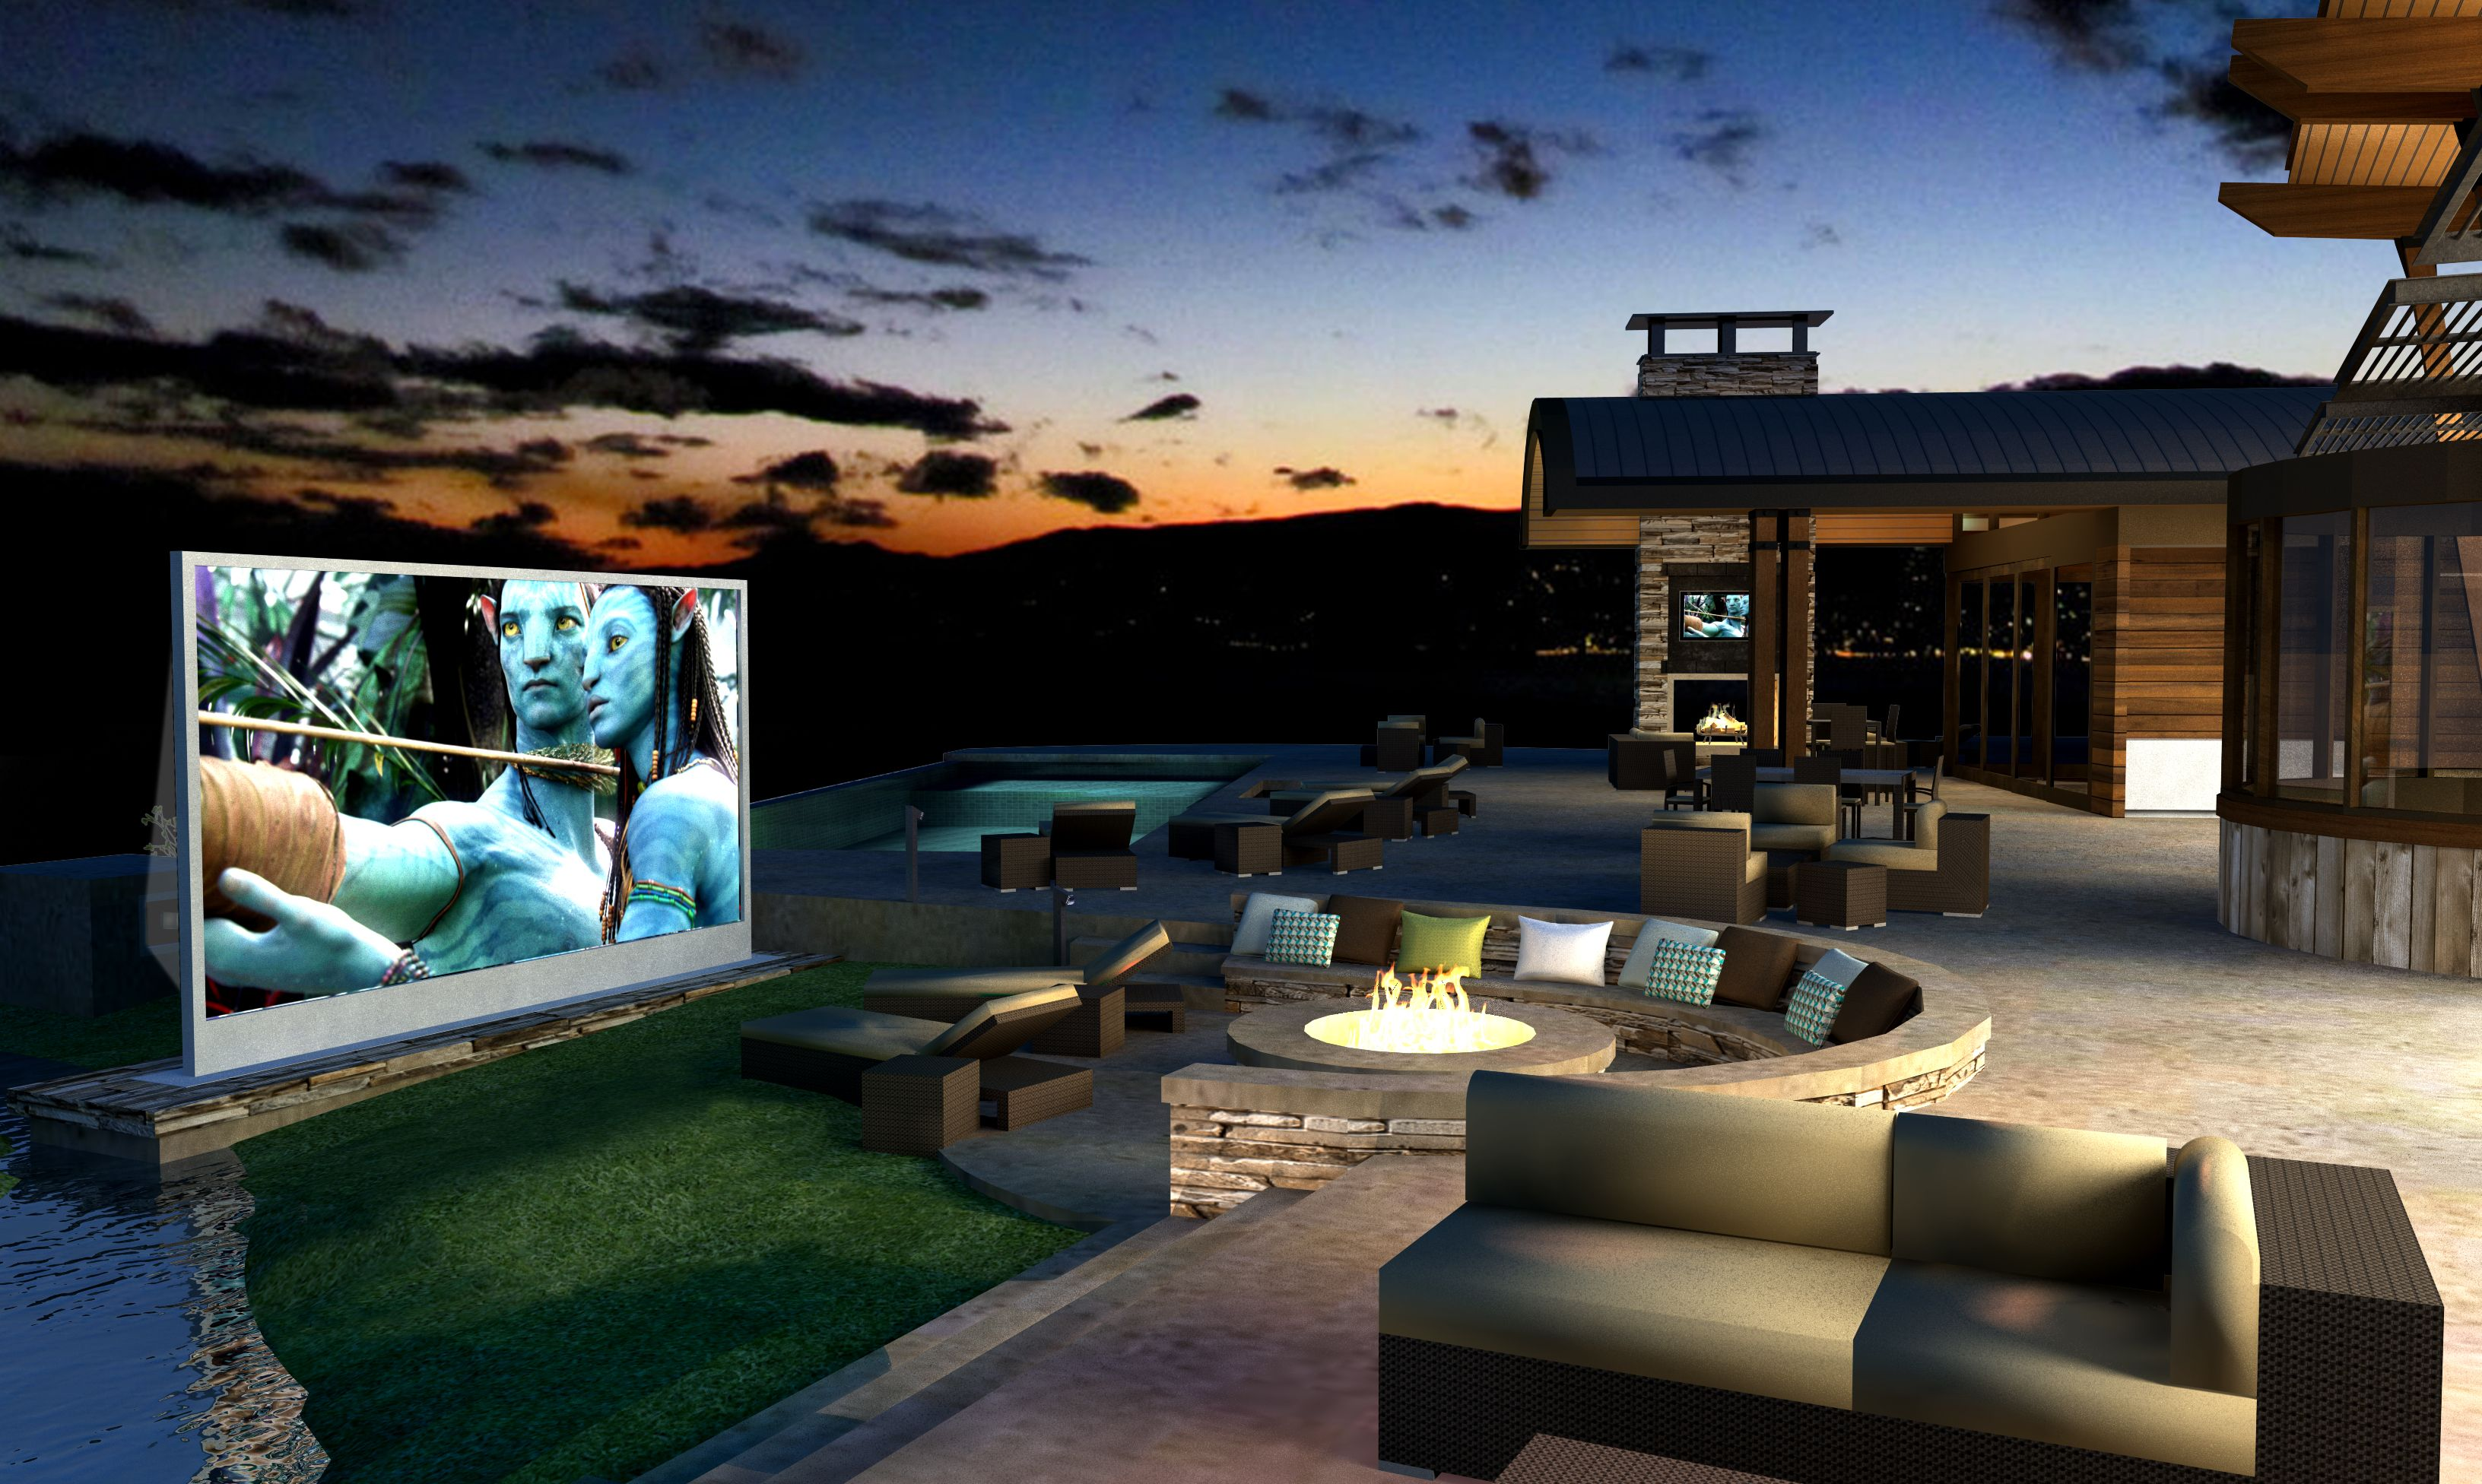 This is a cgi--I like the outdoor screen/firepit, but find the fireplace/ flat screen TV a little redundant.